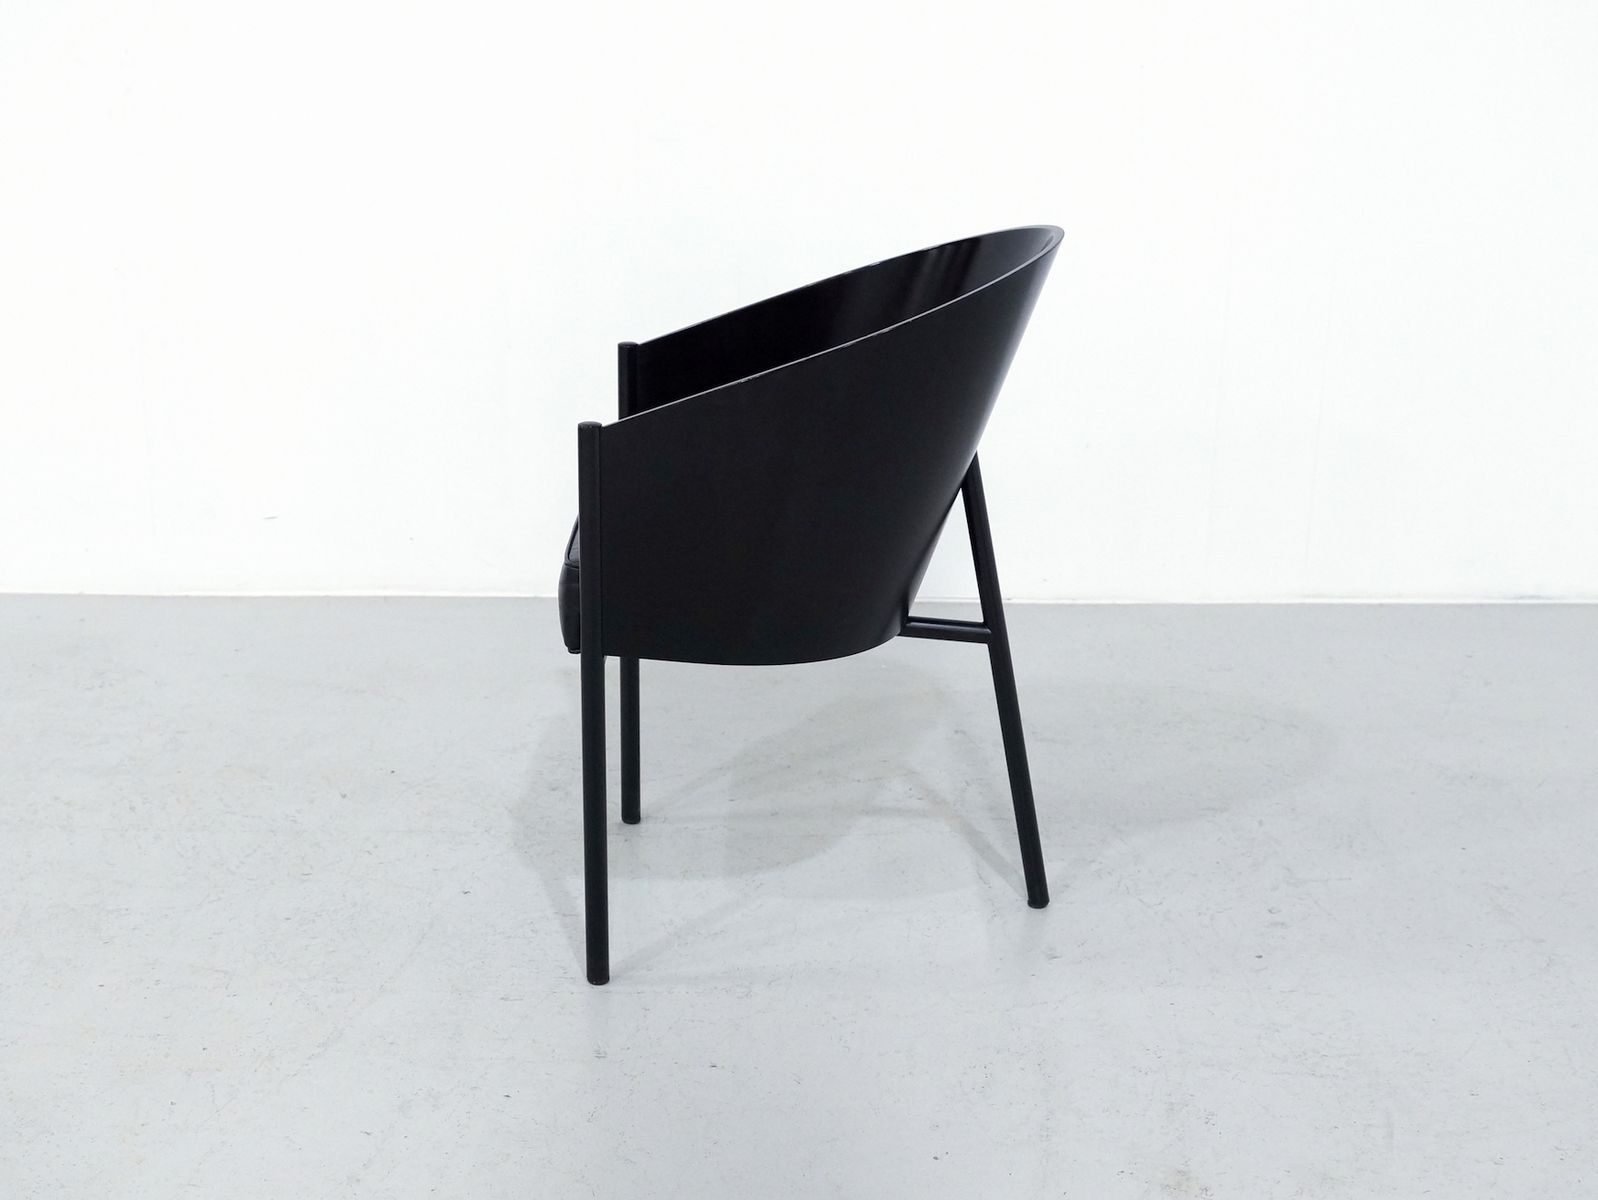 chaise driade stunning driade chaise pipe with chaise driade interesting chaise sissi chaise. Black Bedroom Furniture Sets. Home Design Ideas